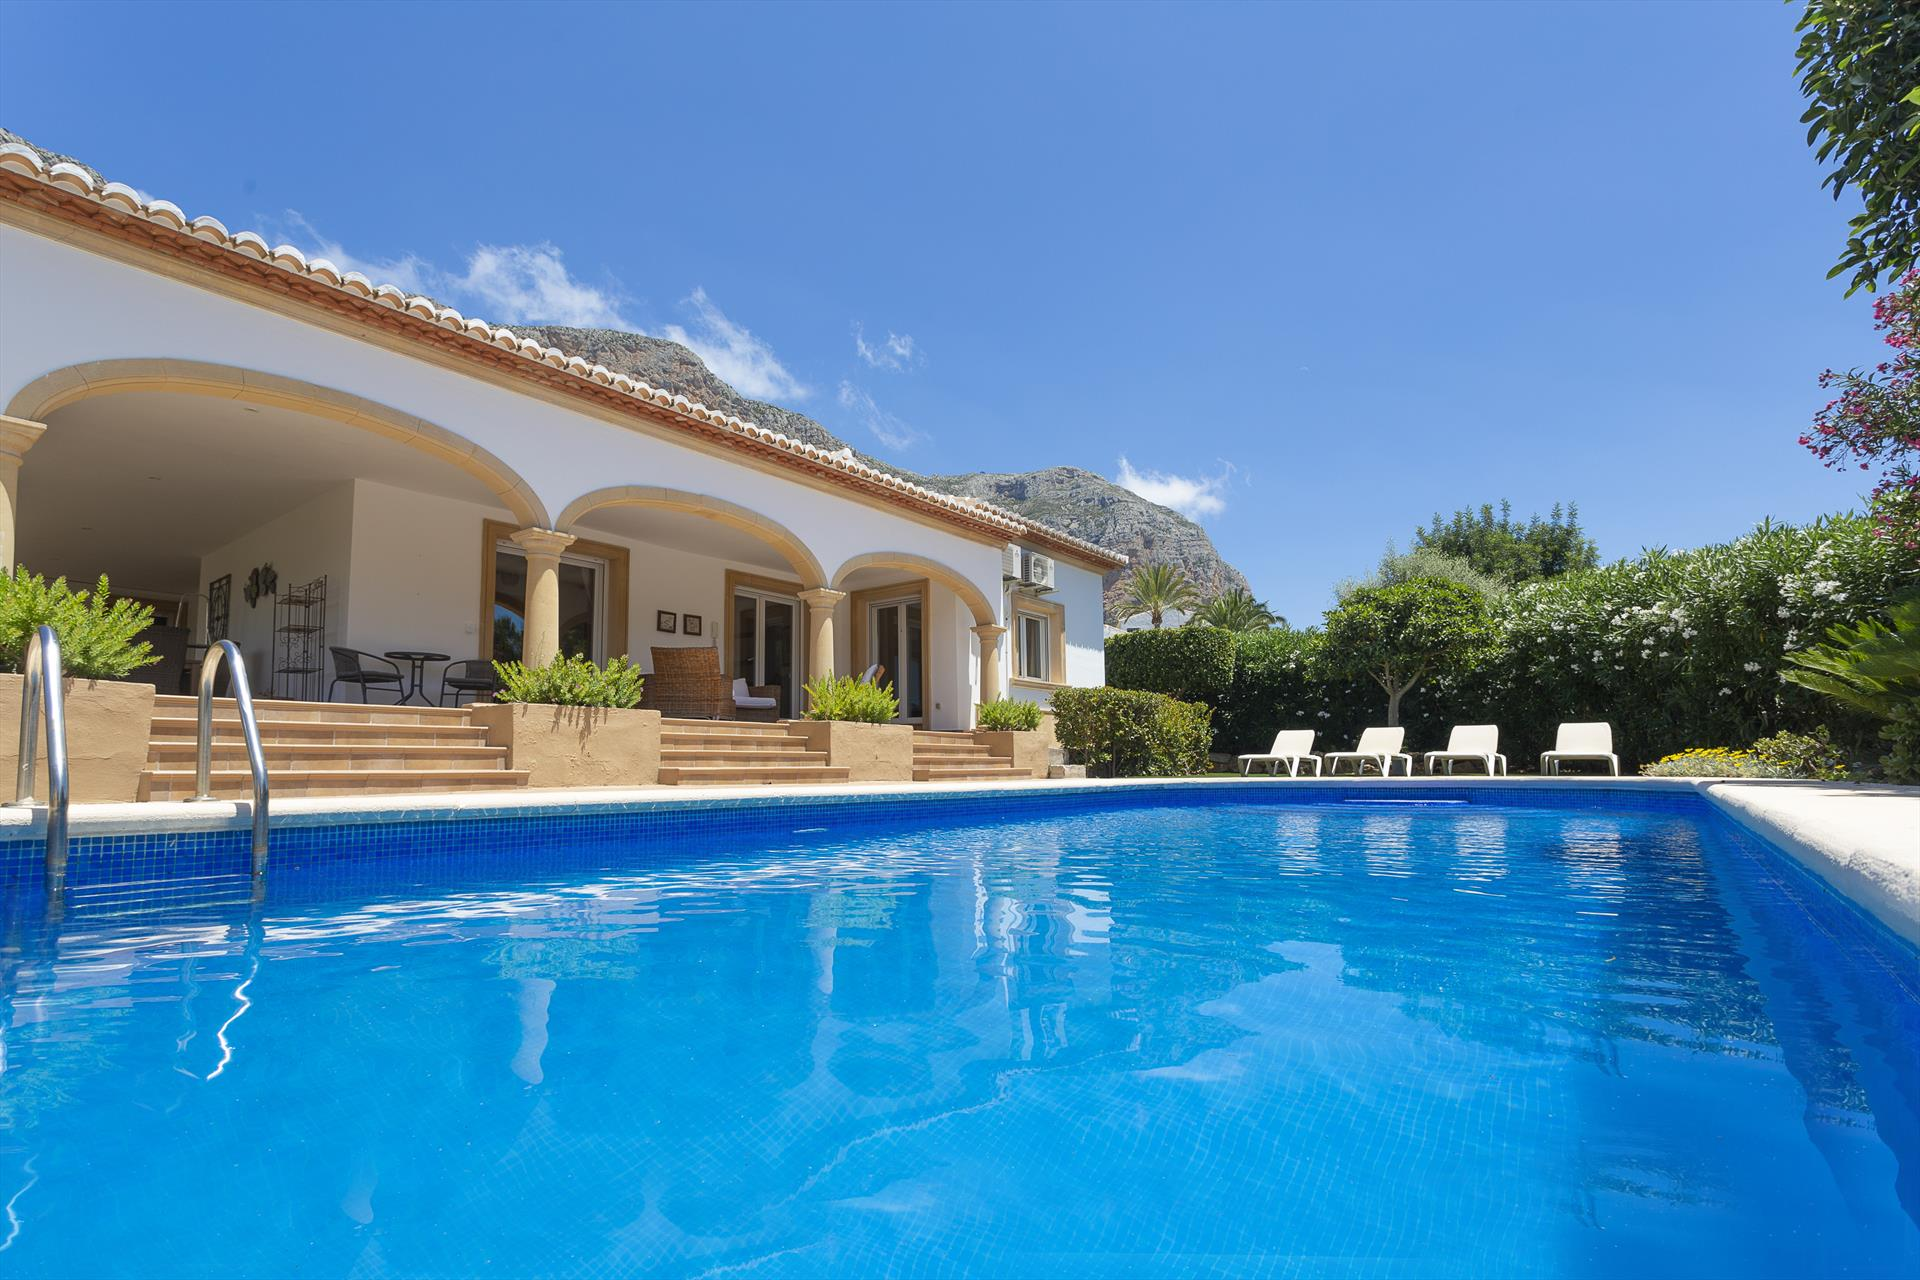 Casa Dory, Lovely holiday villa for 10 people in Javea with private pool and beautiful views of the Montgo mountain and the valley.This.....